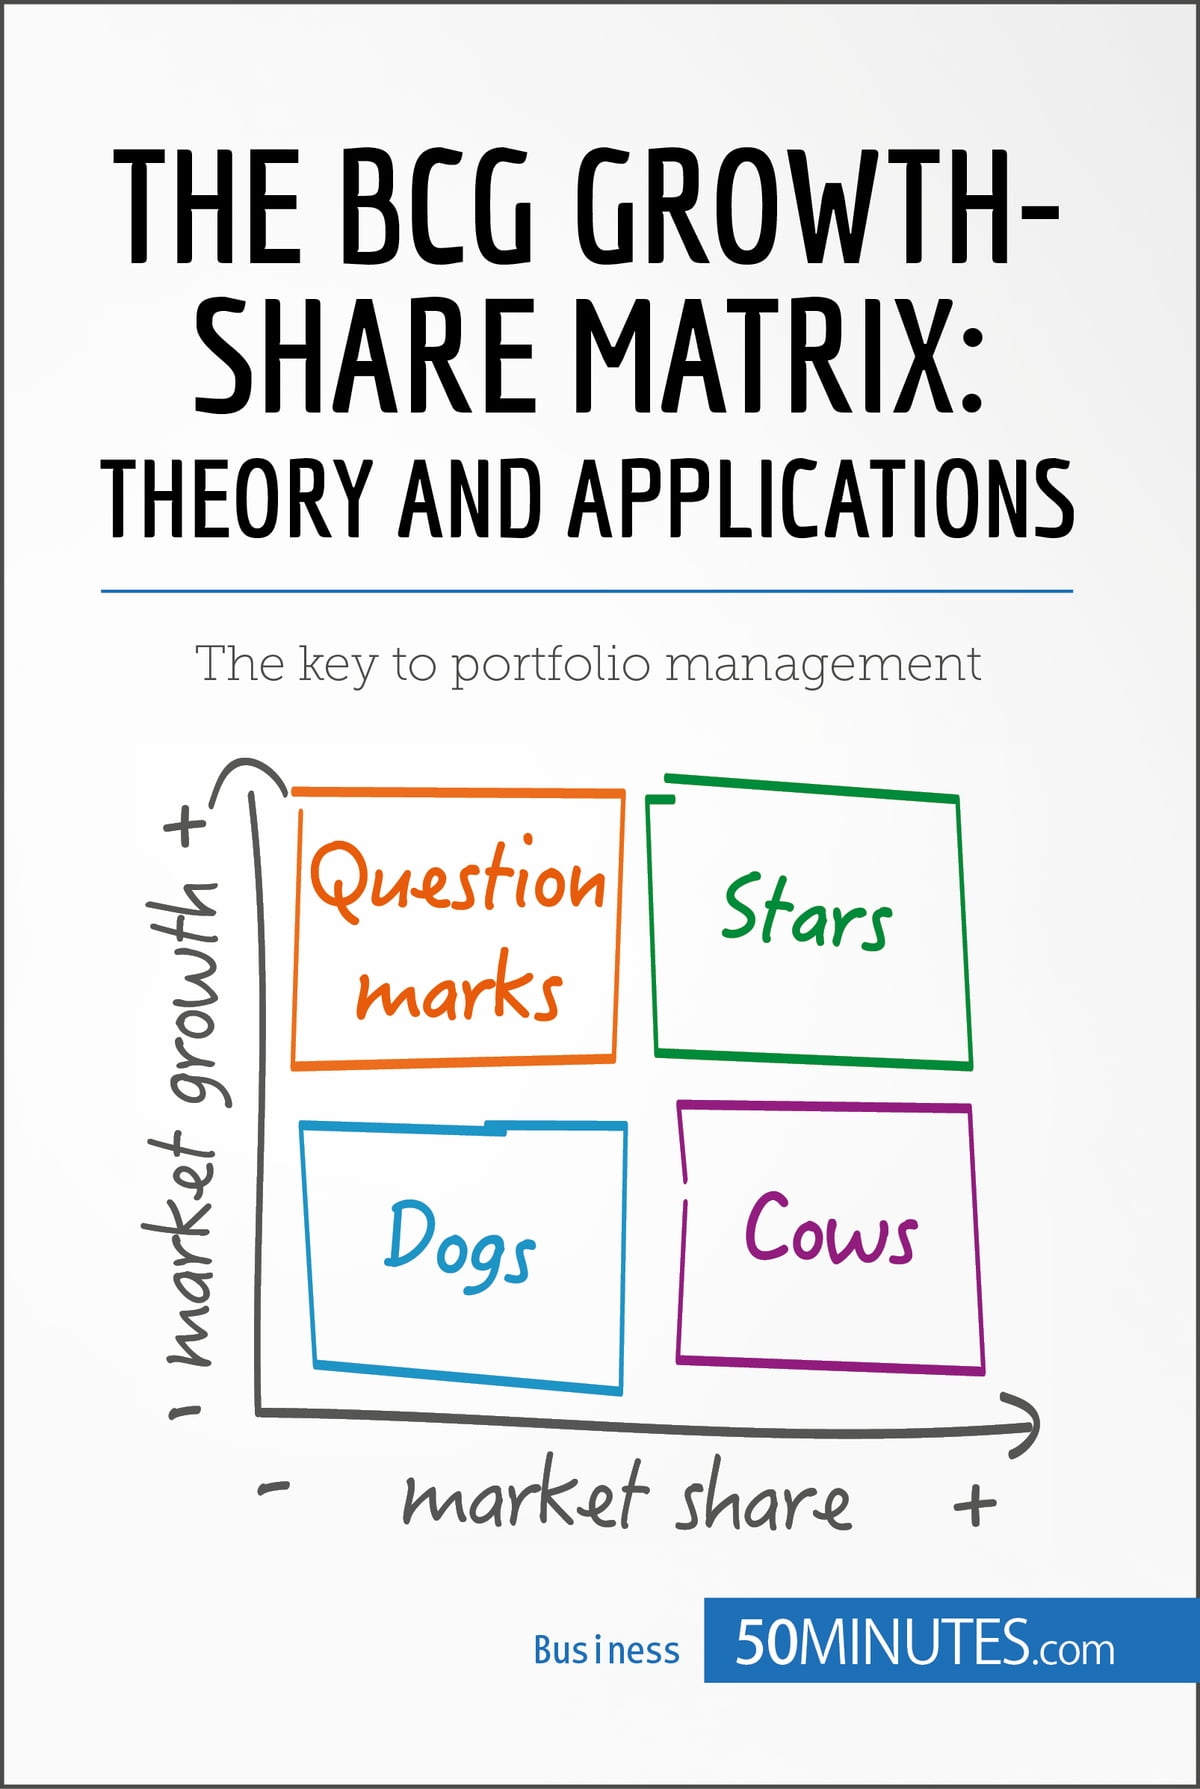 The BCG Growth-Share Matrix: Theory and Applications eBook by 50MINUTES - 9782806266156 | Rakuten Kobo